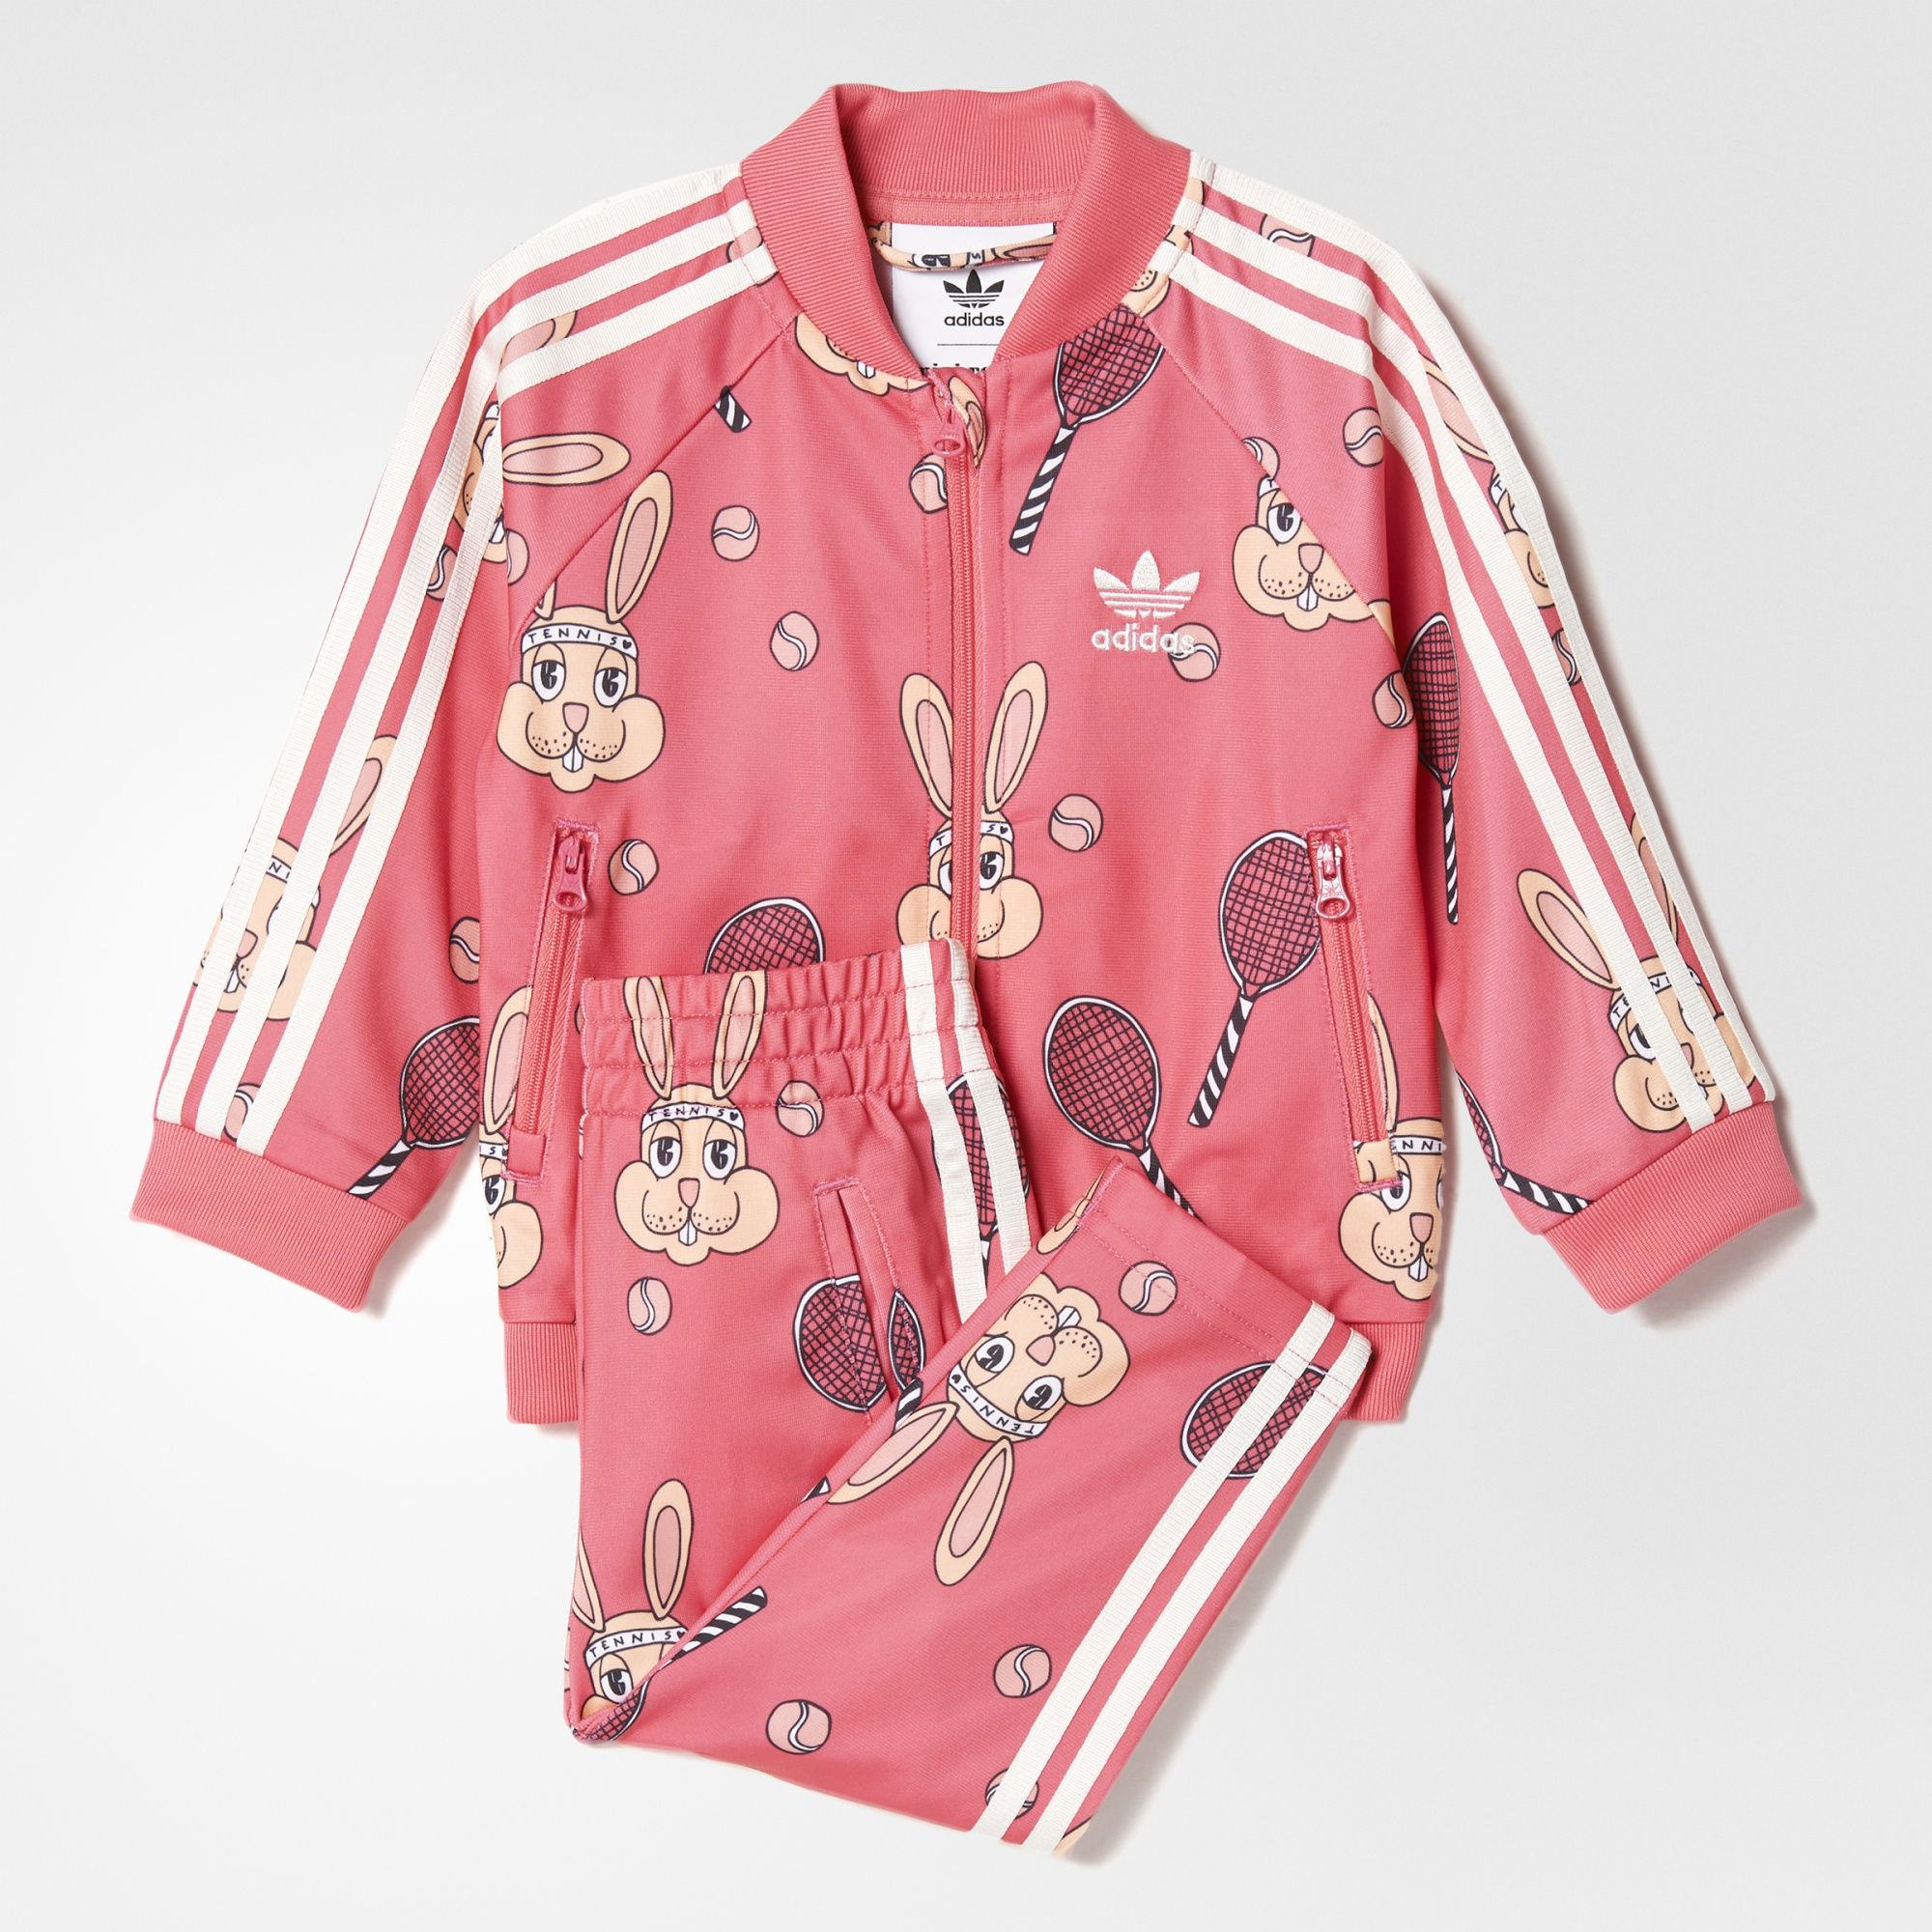 f071b1d7545bf Swedish brand Mini Rodini created the playful bunny-and-tennis-racket print  that covers this fun-to-wear track suit for toddlers.